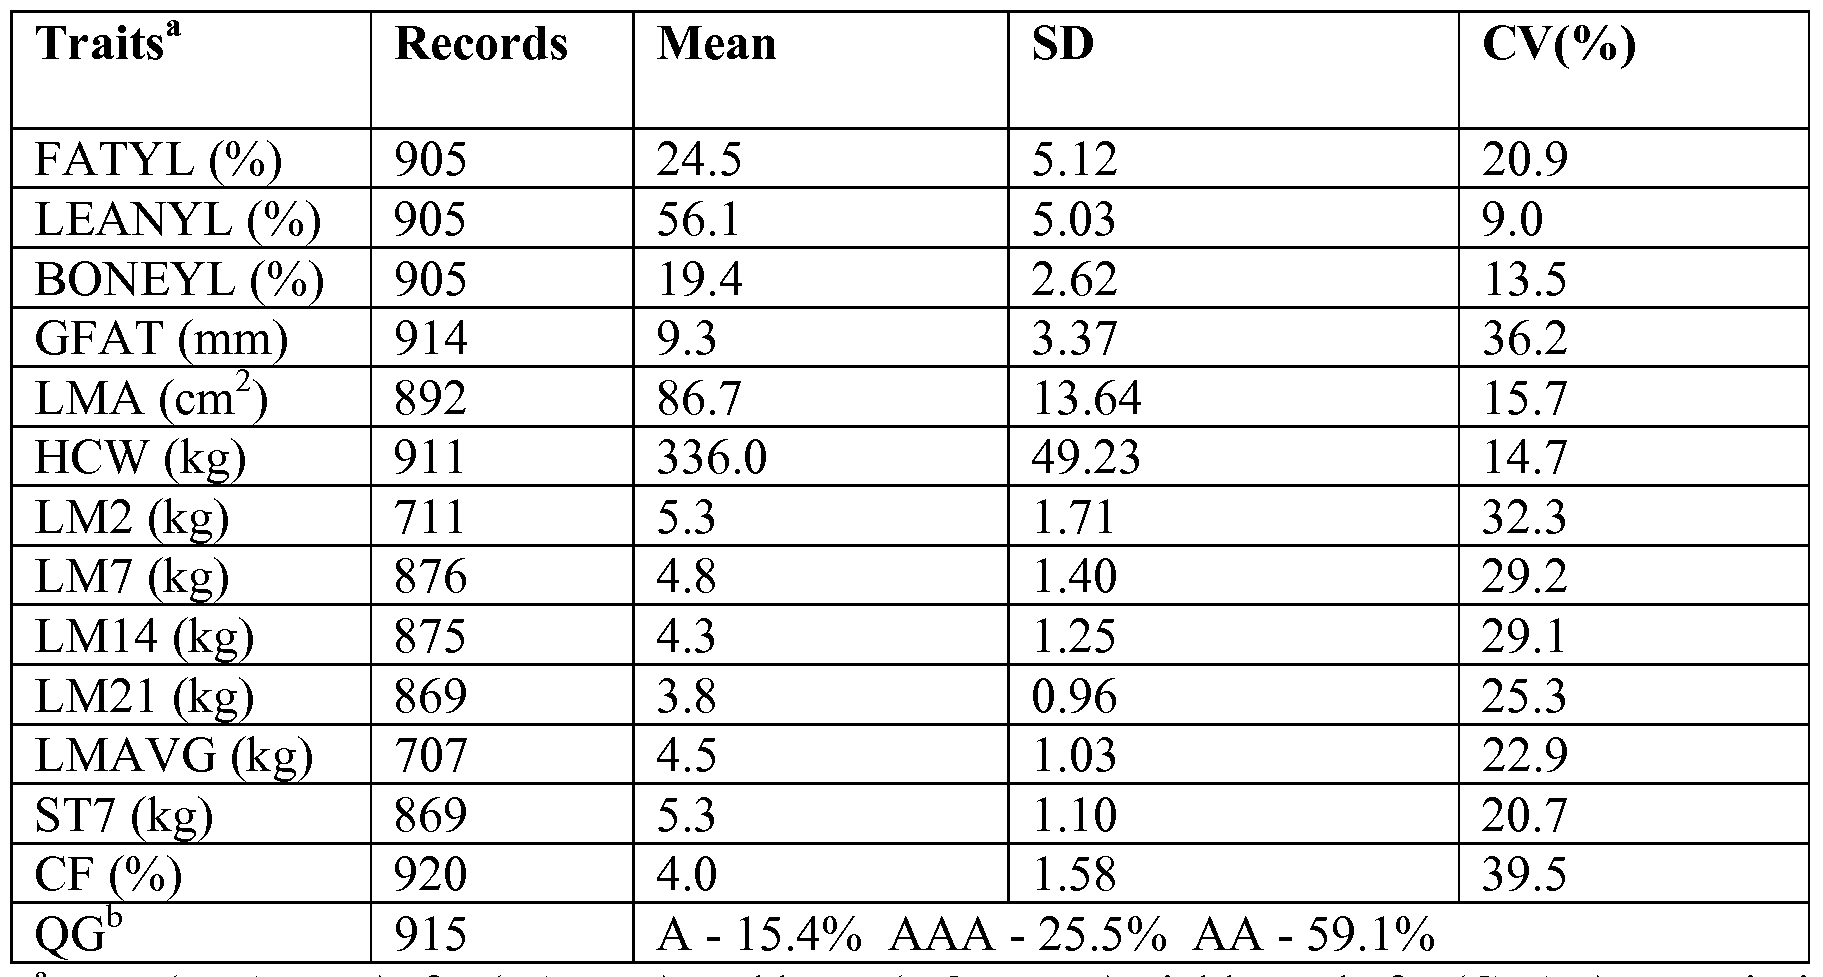 lma cv WO2008022022A2   Leptin and growth hormone receptor gene markers